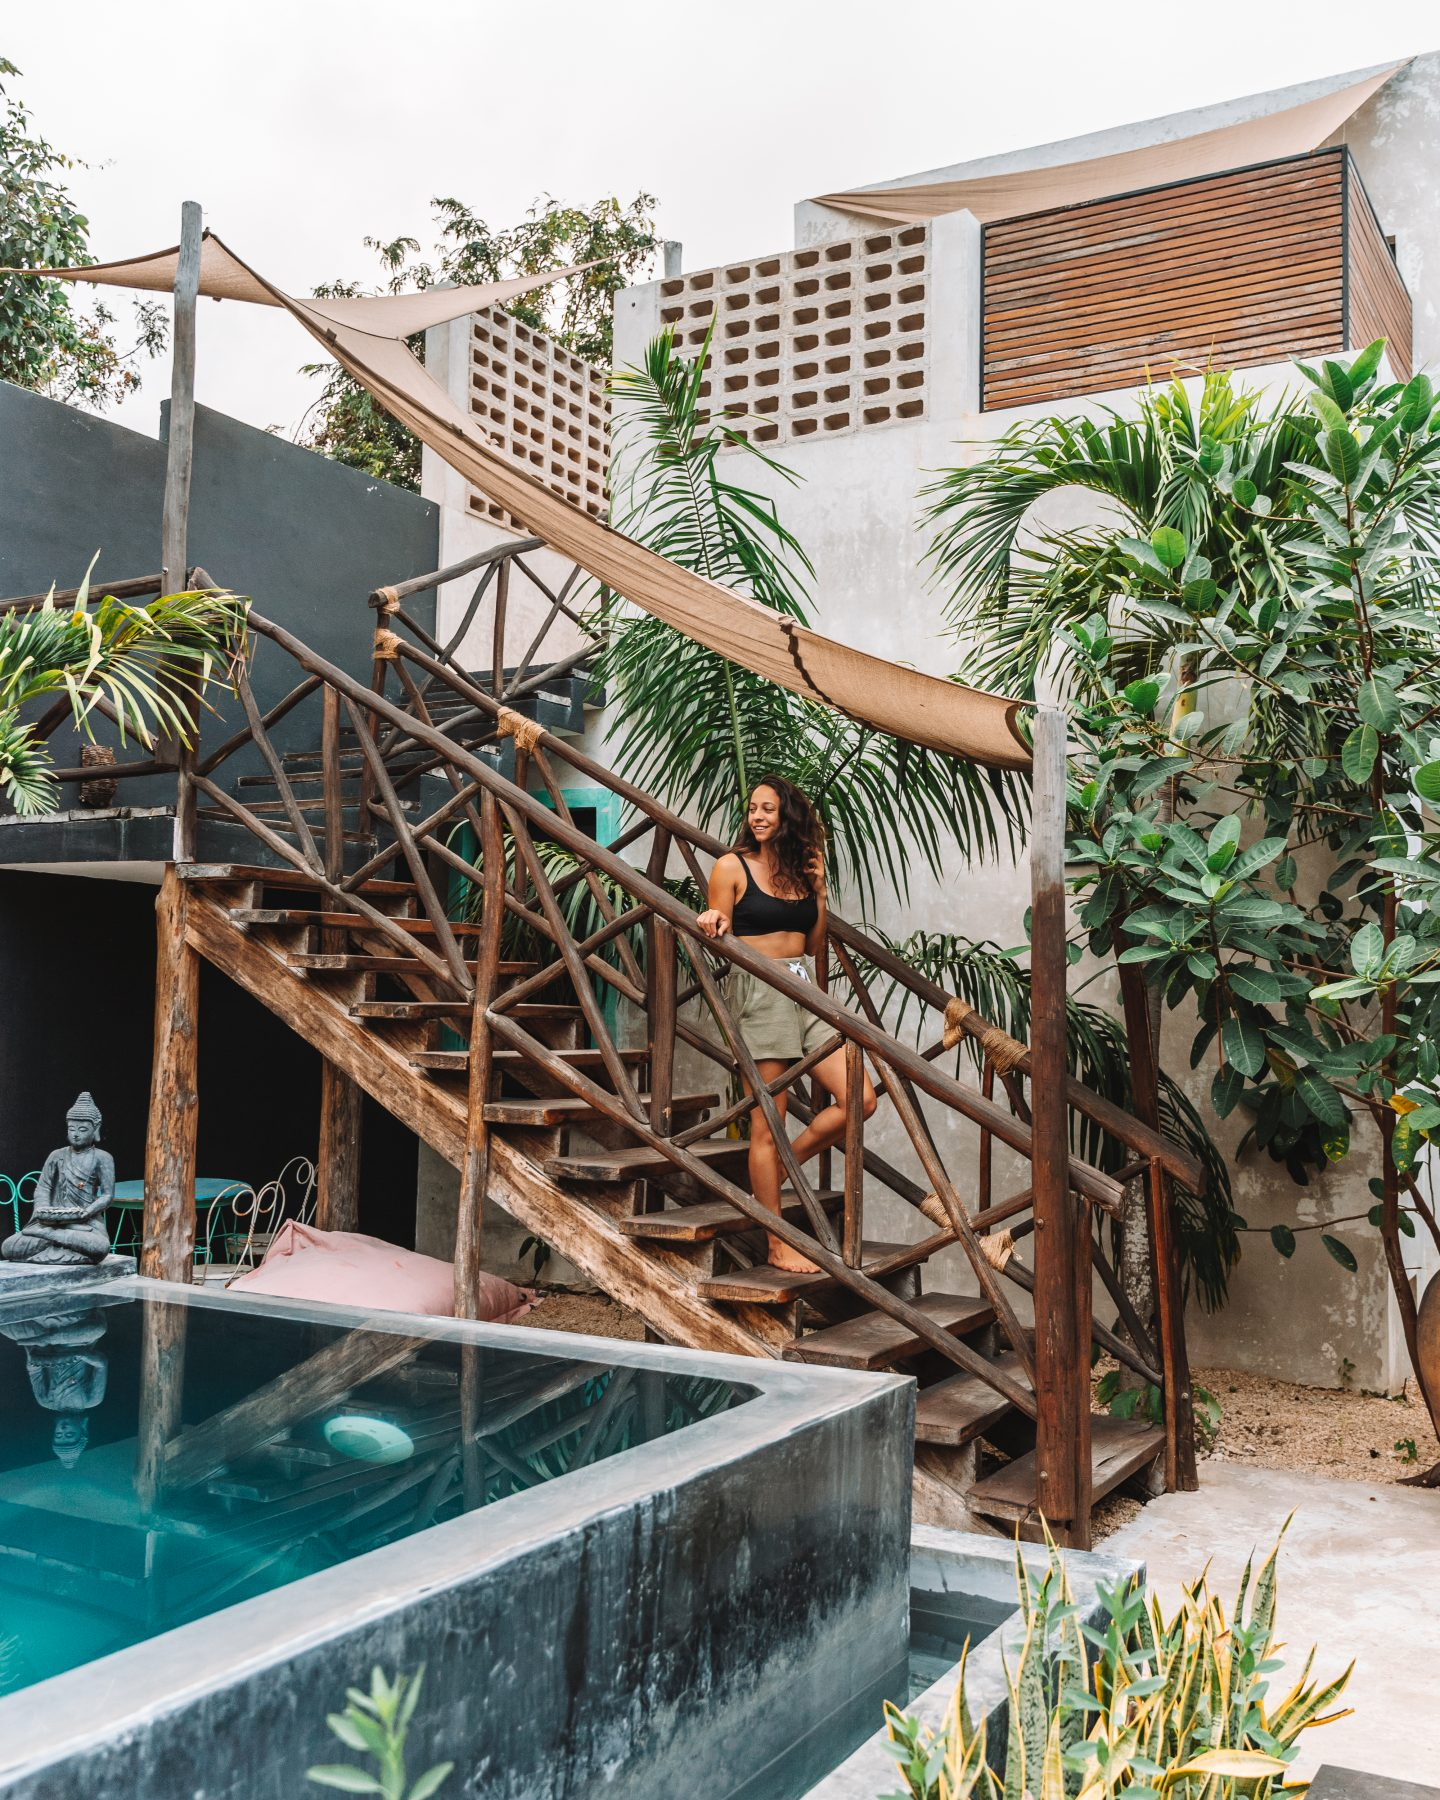 Where to stay in Tulum - Turquoise Petit Hotel